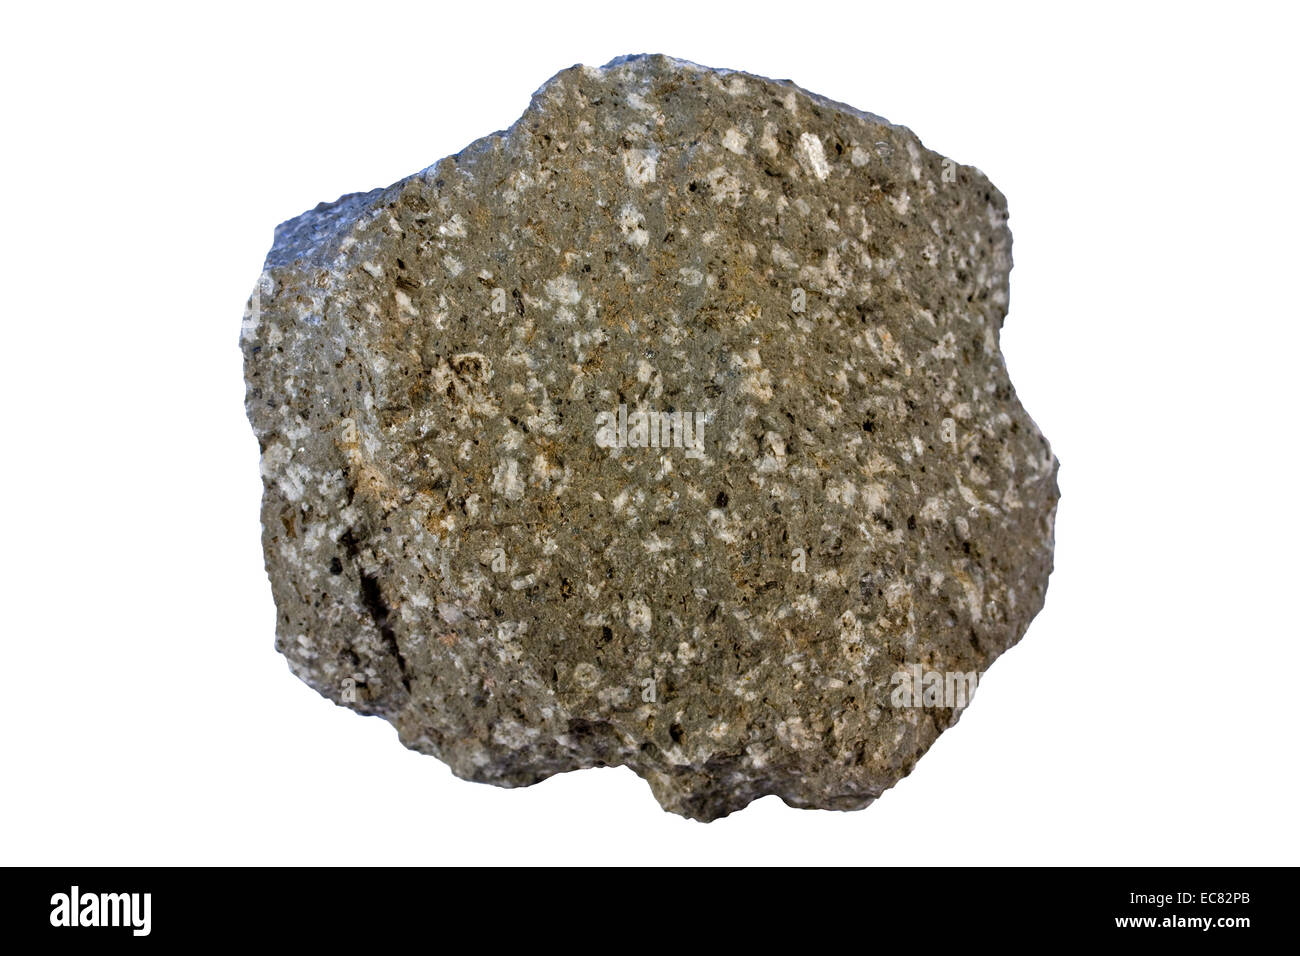 Dacite (volcanic rock with intermediate composition between felsic and mafic rocks) - Stock Image